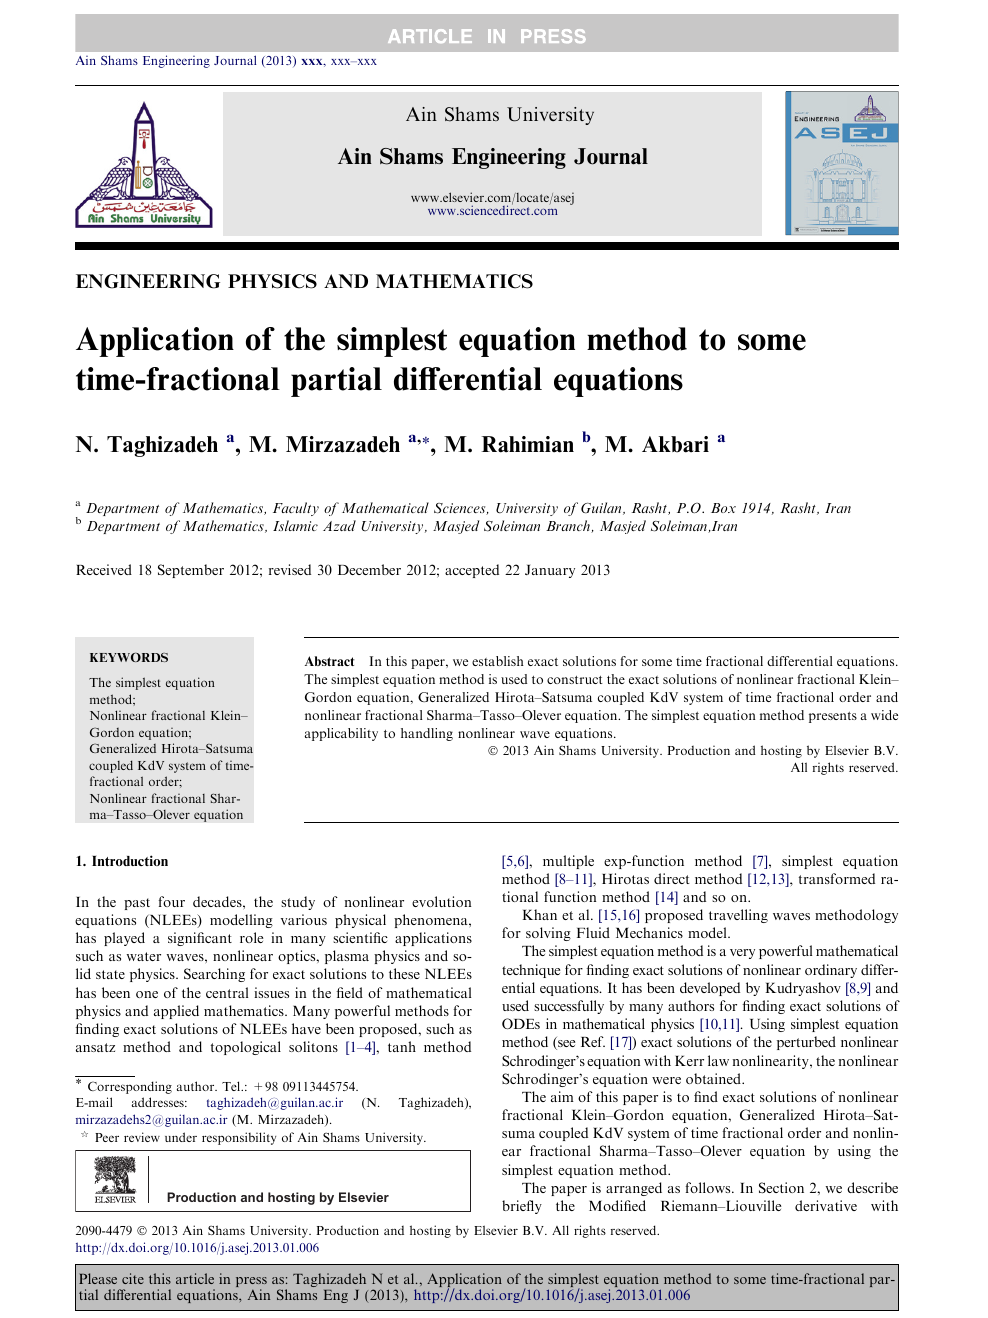 Application of the simplest equation method to some time